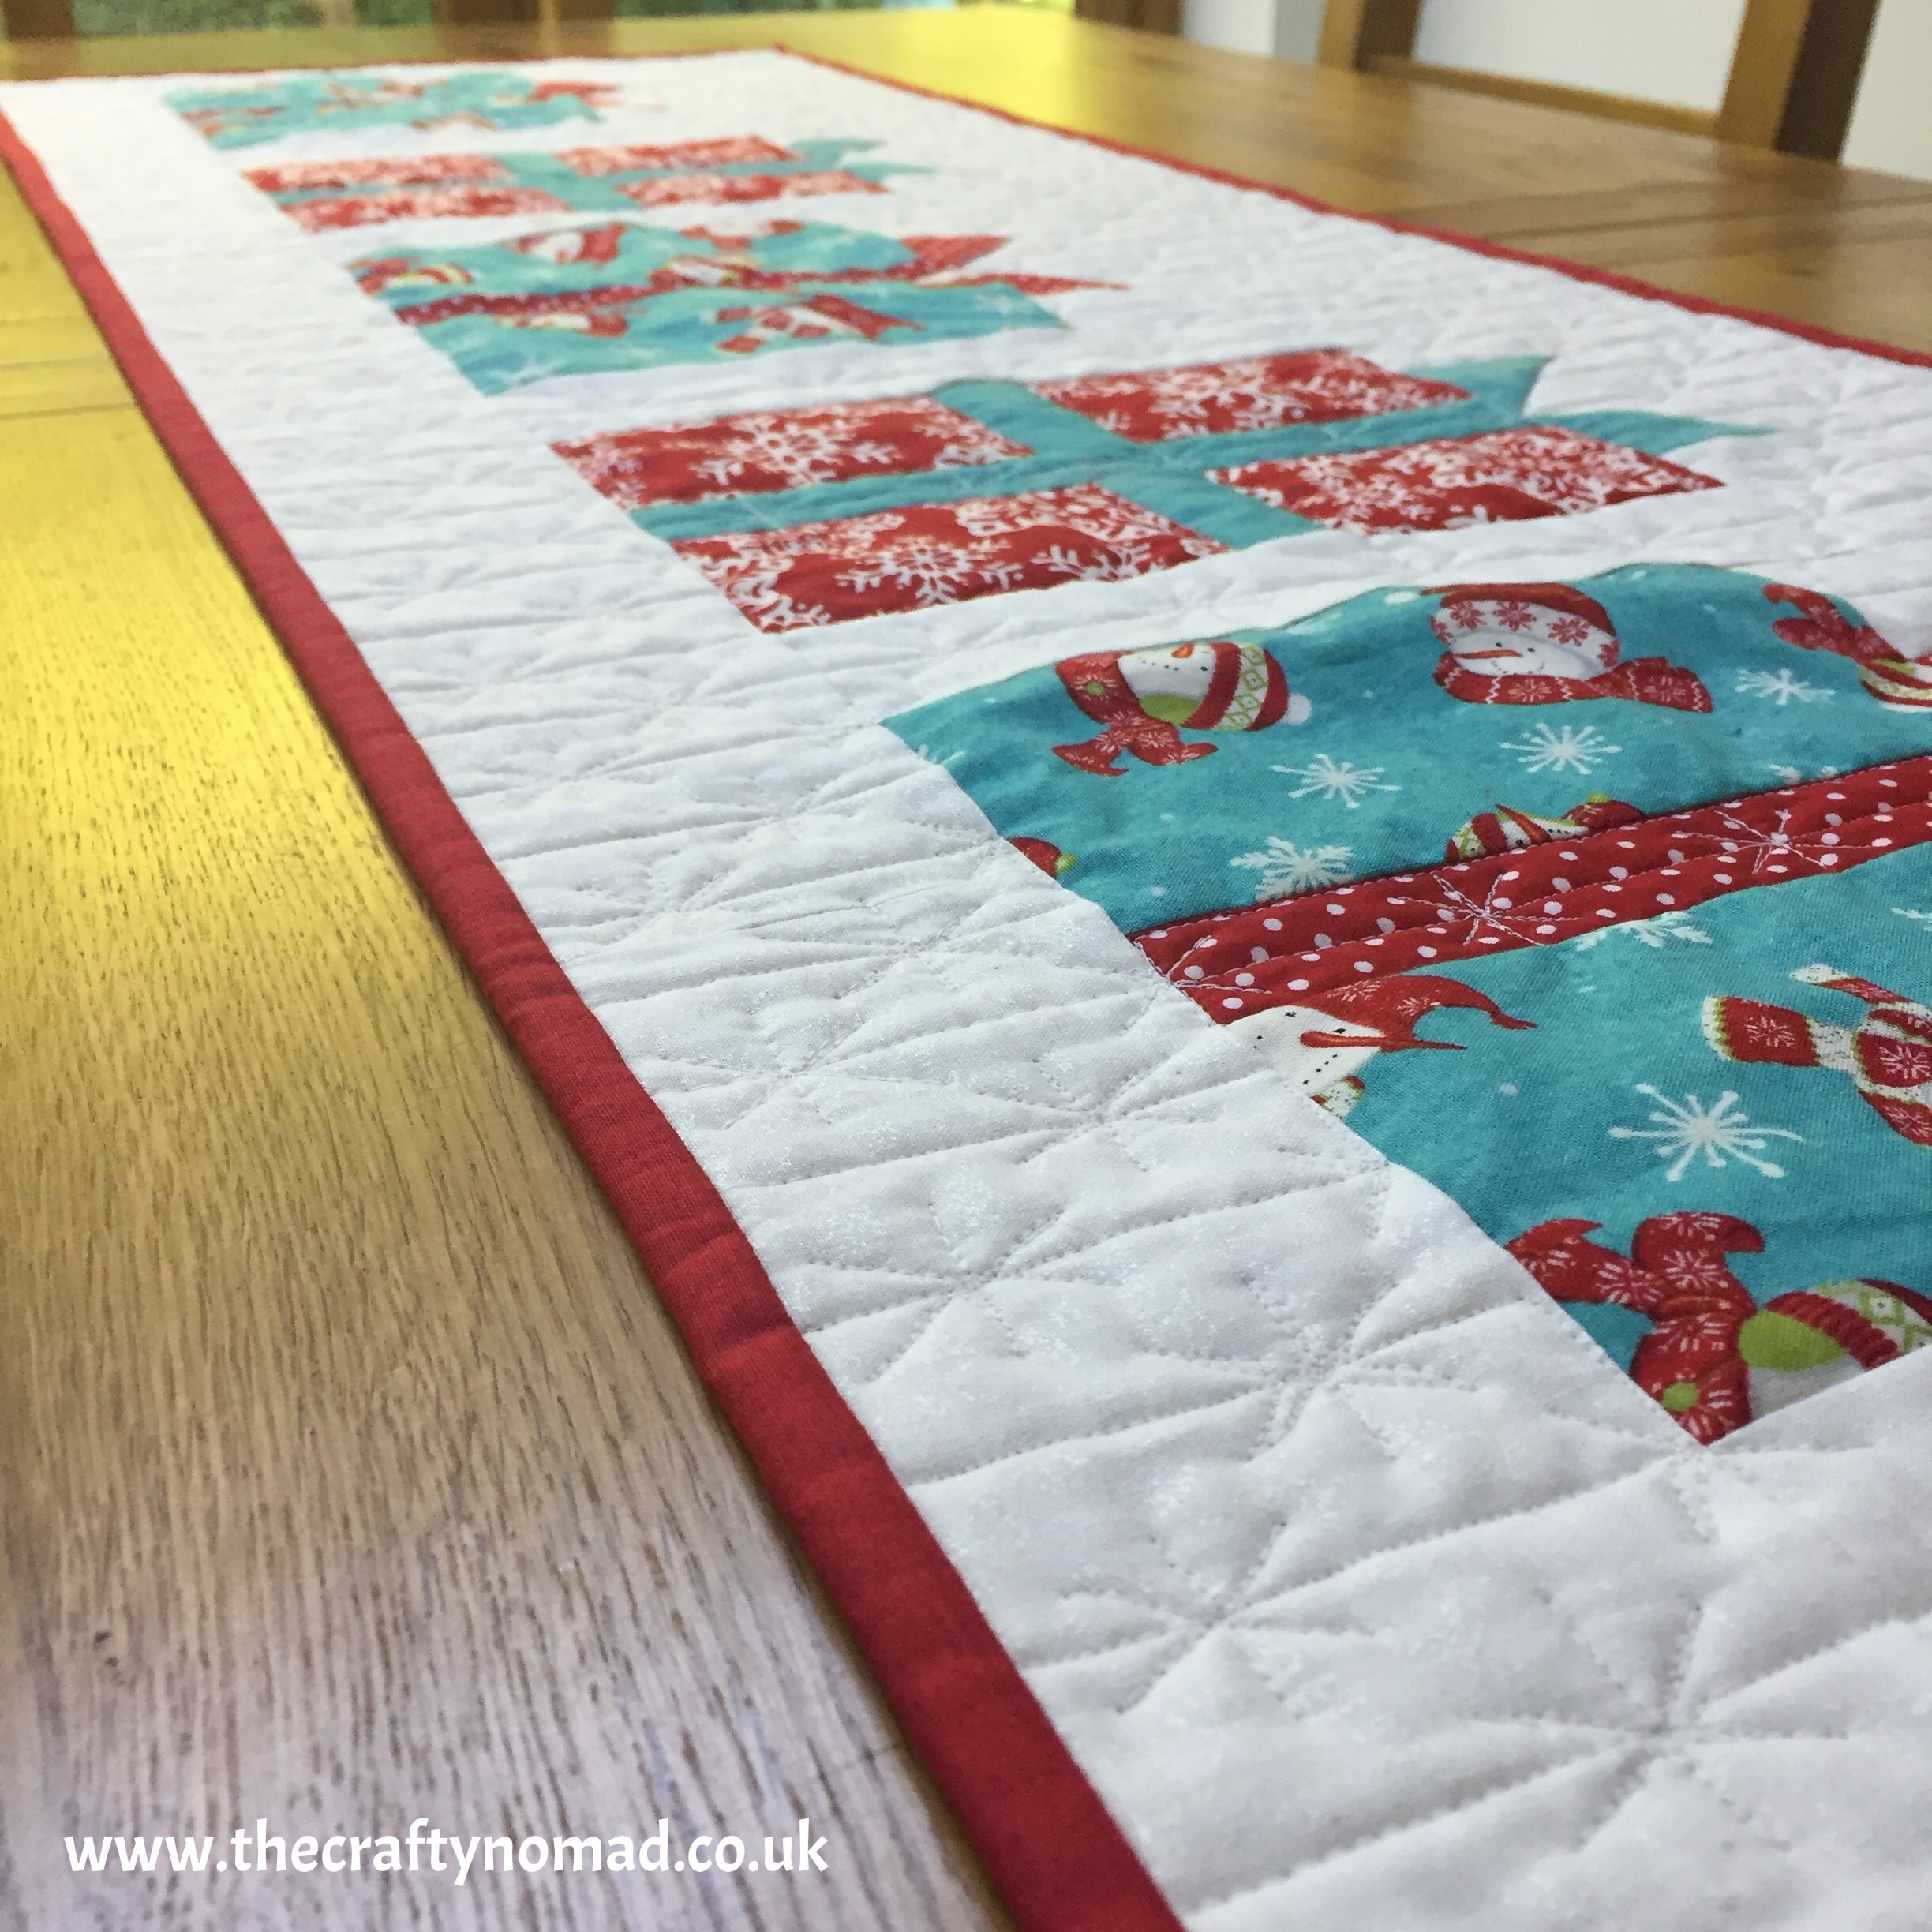 Gifts Galore Christmas Table Runner Patchwork Quilting Pattern The Crafty Nomad